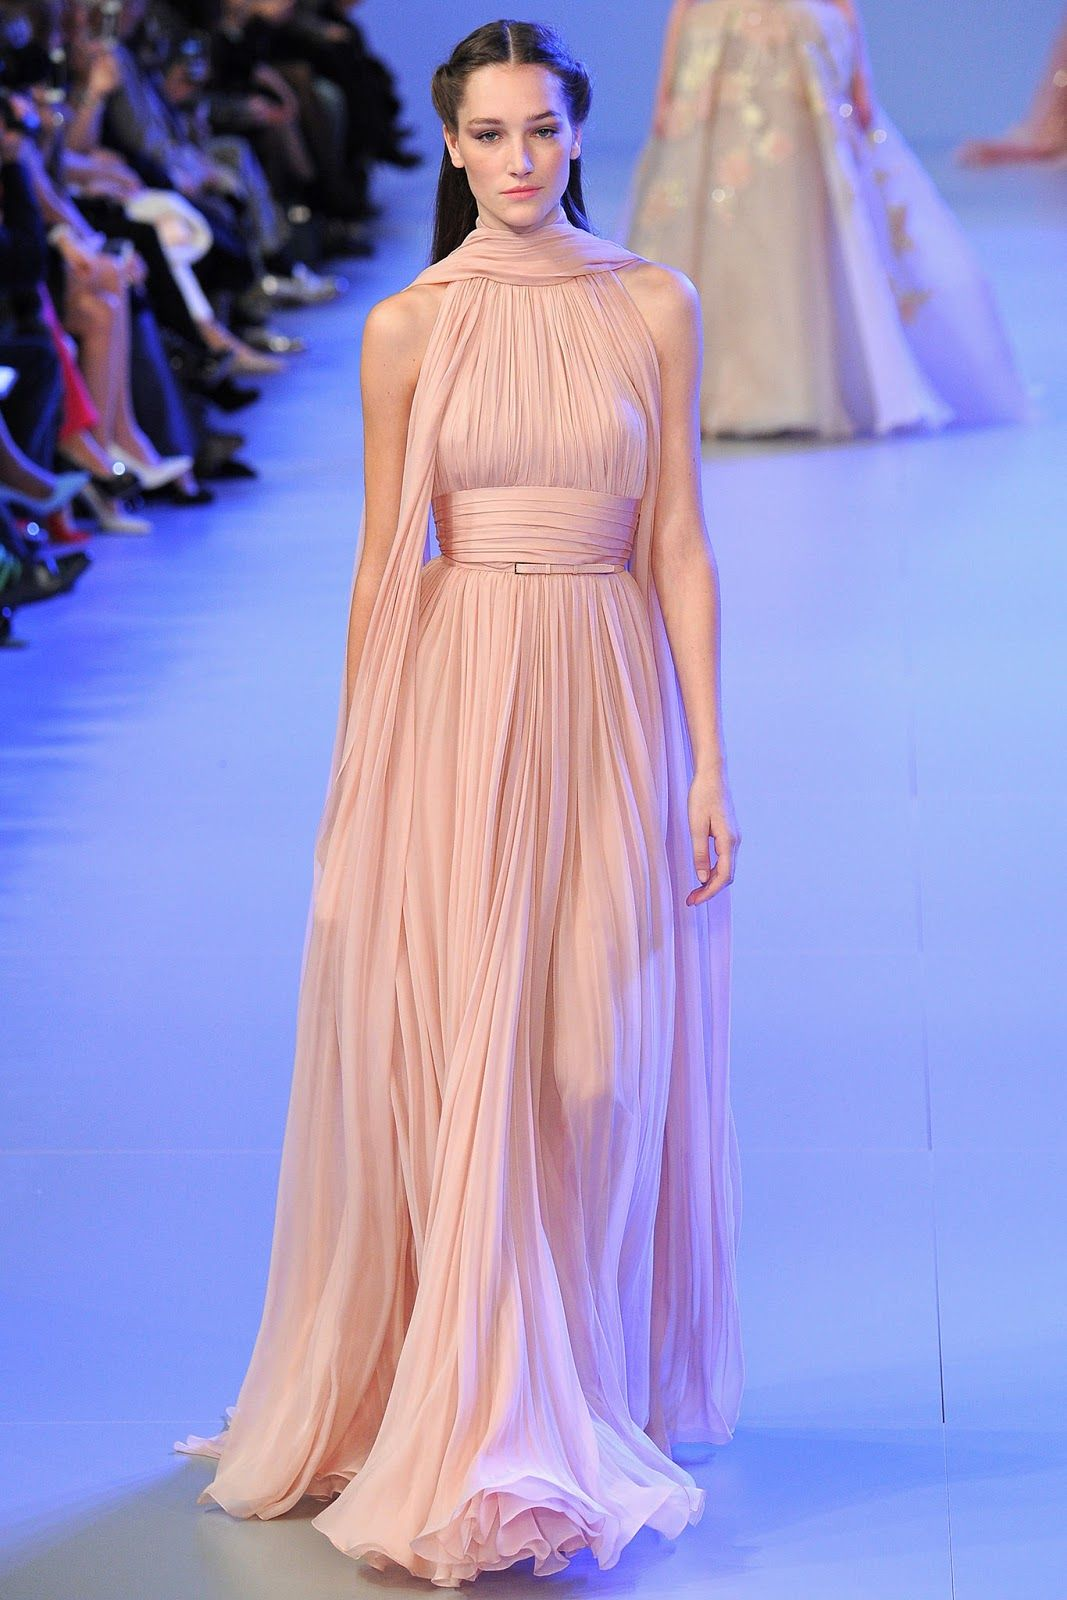 elie saab haute couture s/s 14 | Fashion Inspiration | Pinterest ...